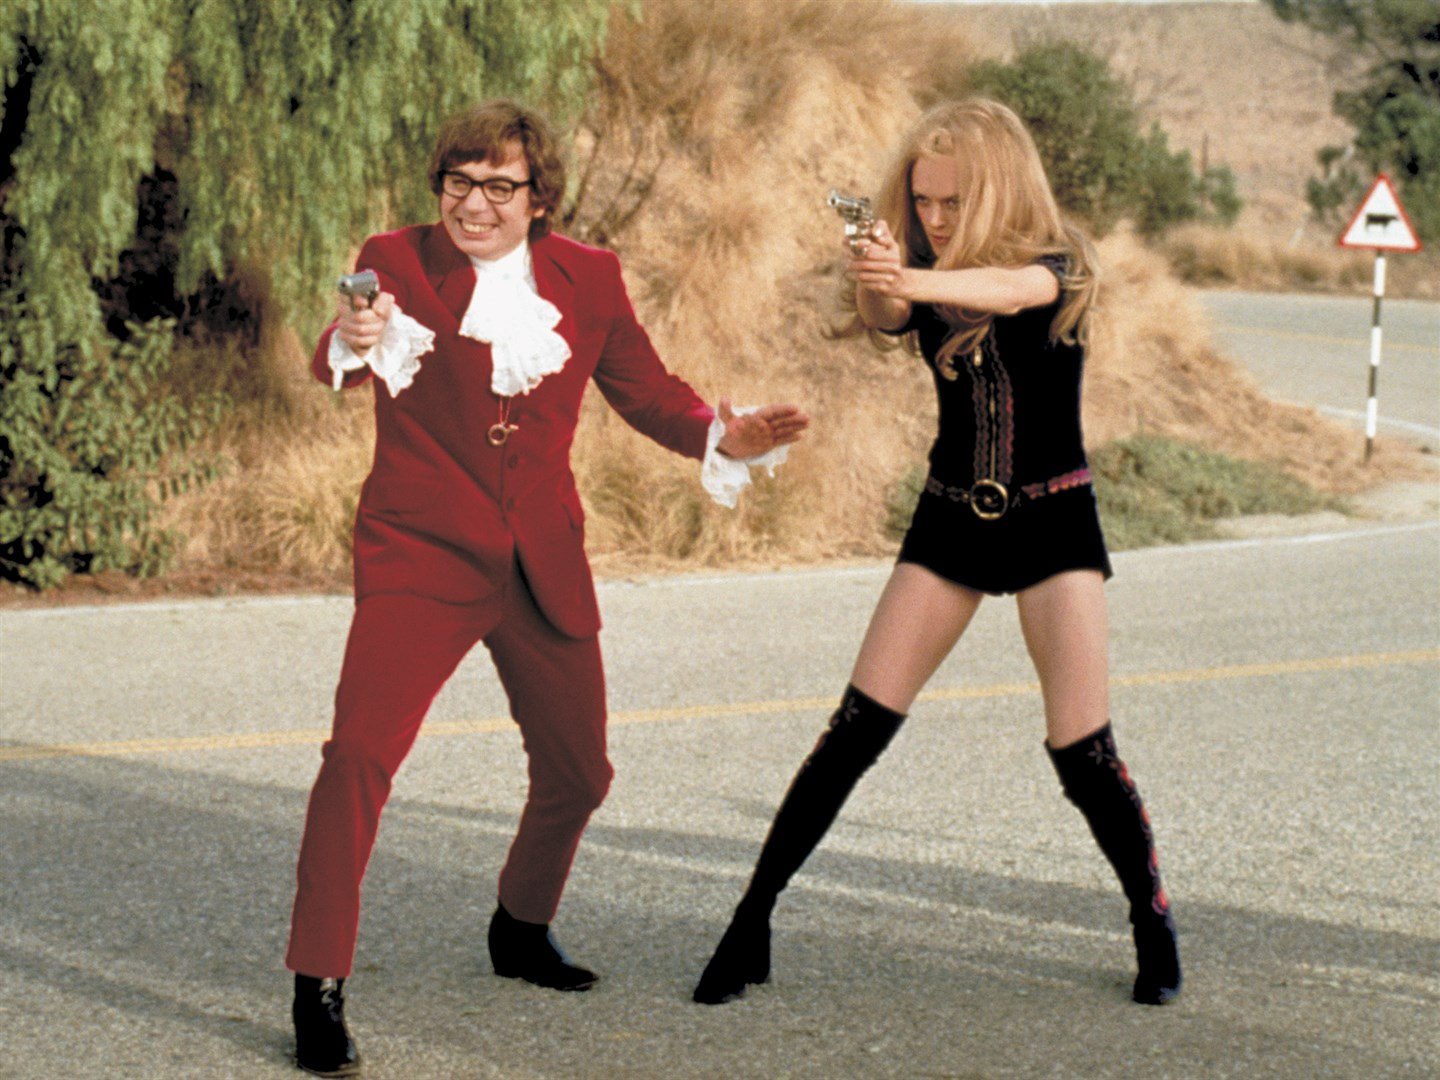 Austin Powers (Mike Myers) and CIA agent Felicity Shagwell (Heather Graham) in Austin Powers: The Spy Who Shagged Me (1999)